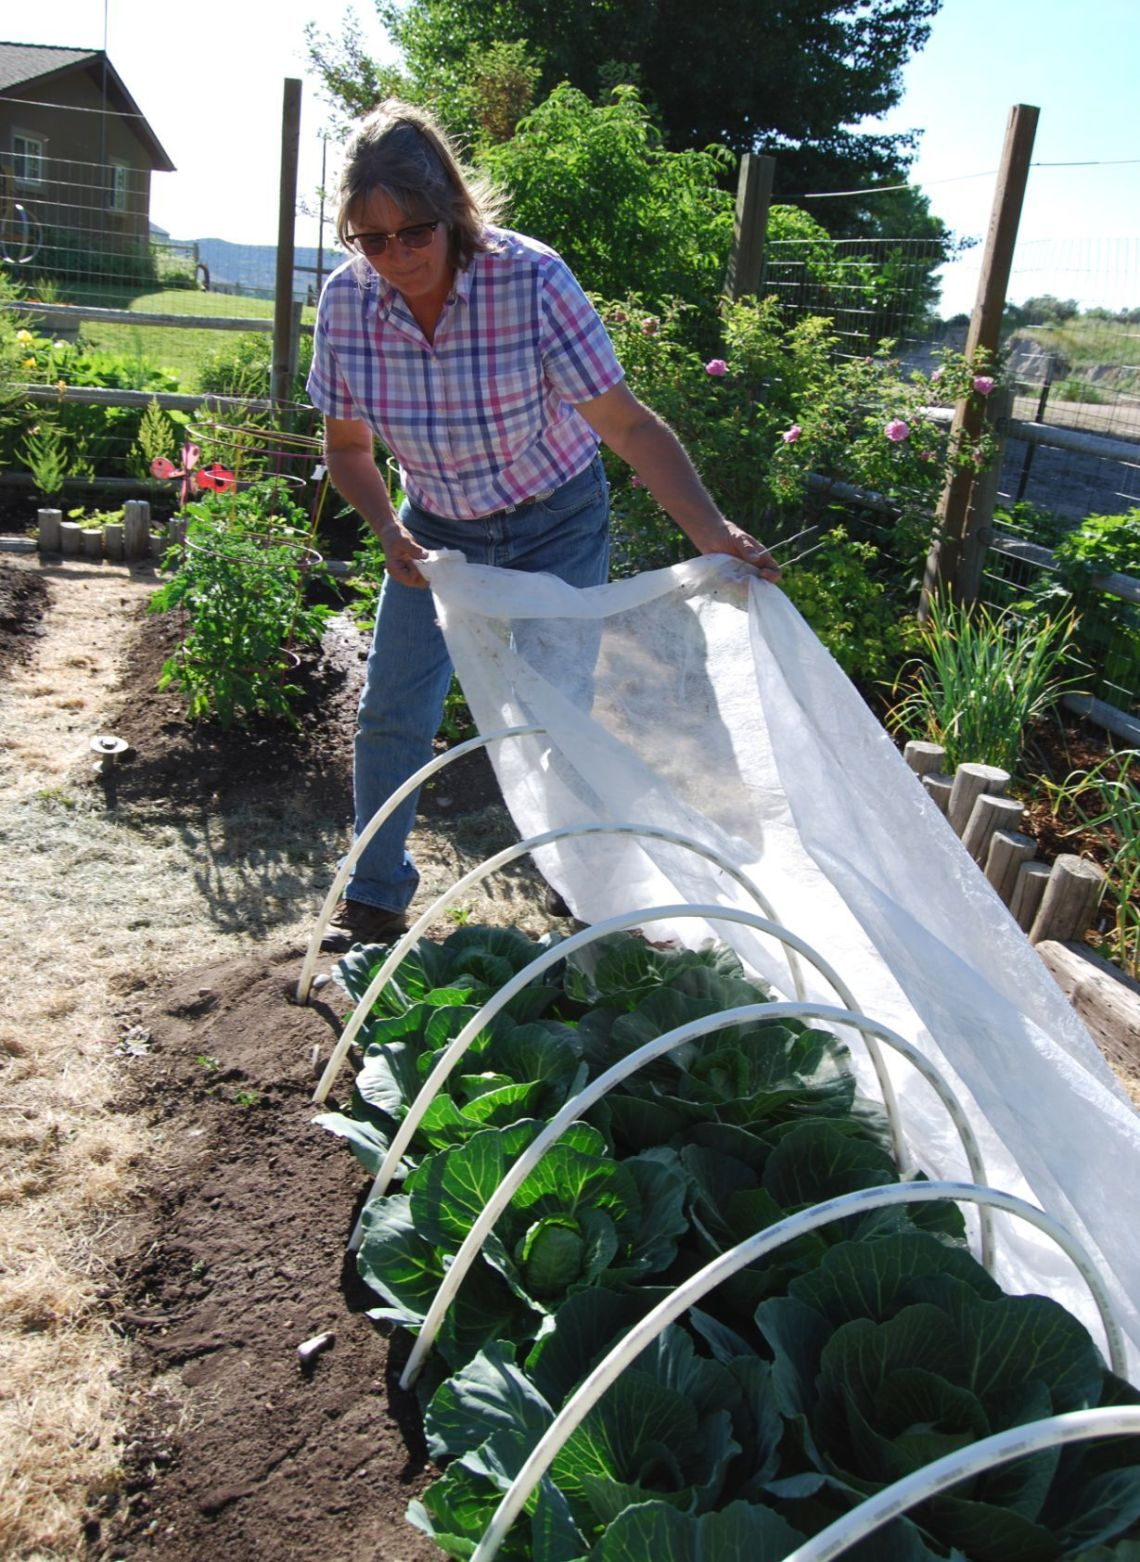 Gardeners Offer Tips For Growing Food In The High Desert Lifestyles Elkodaily Com